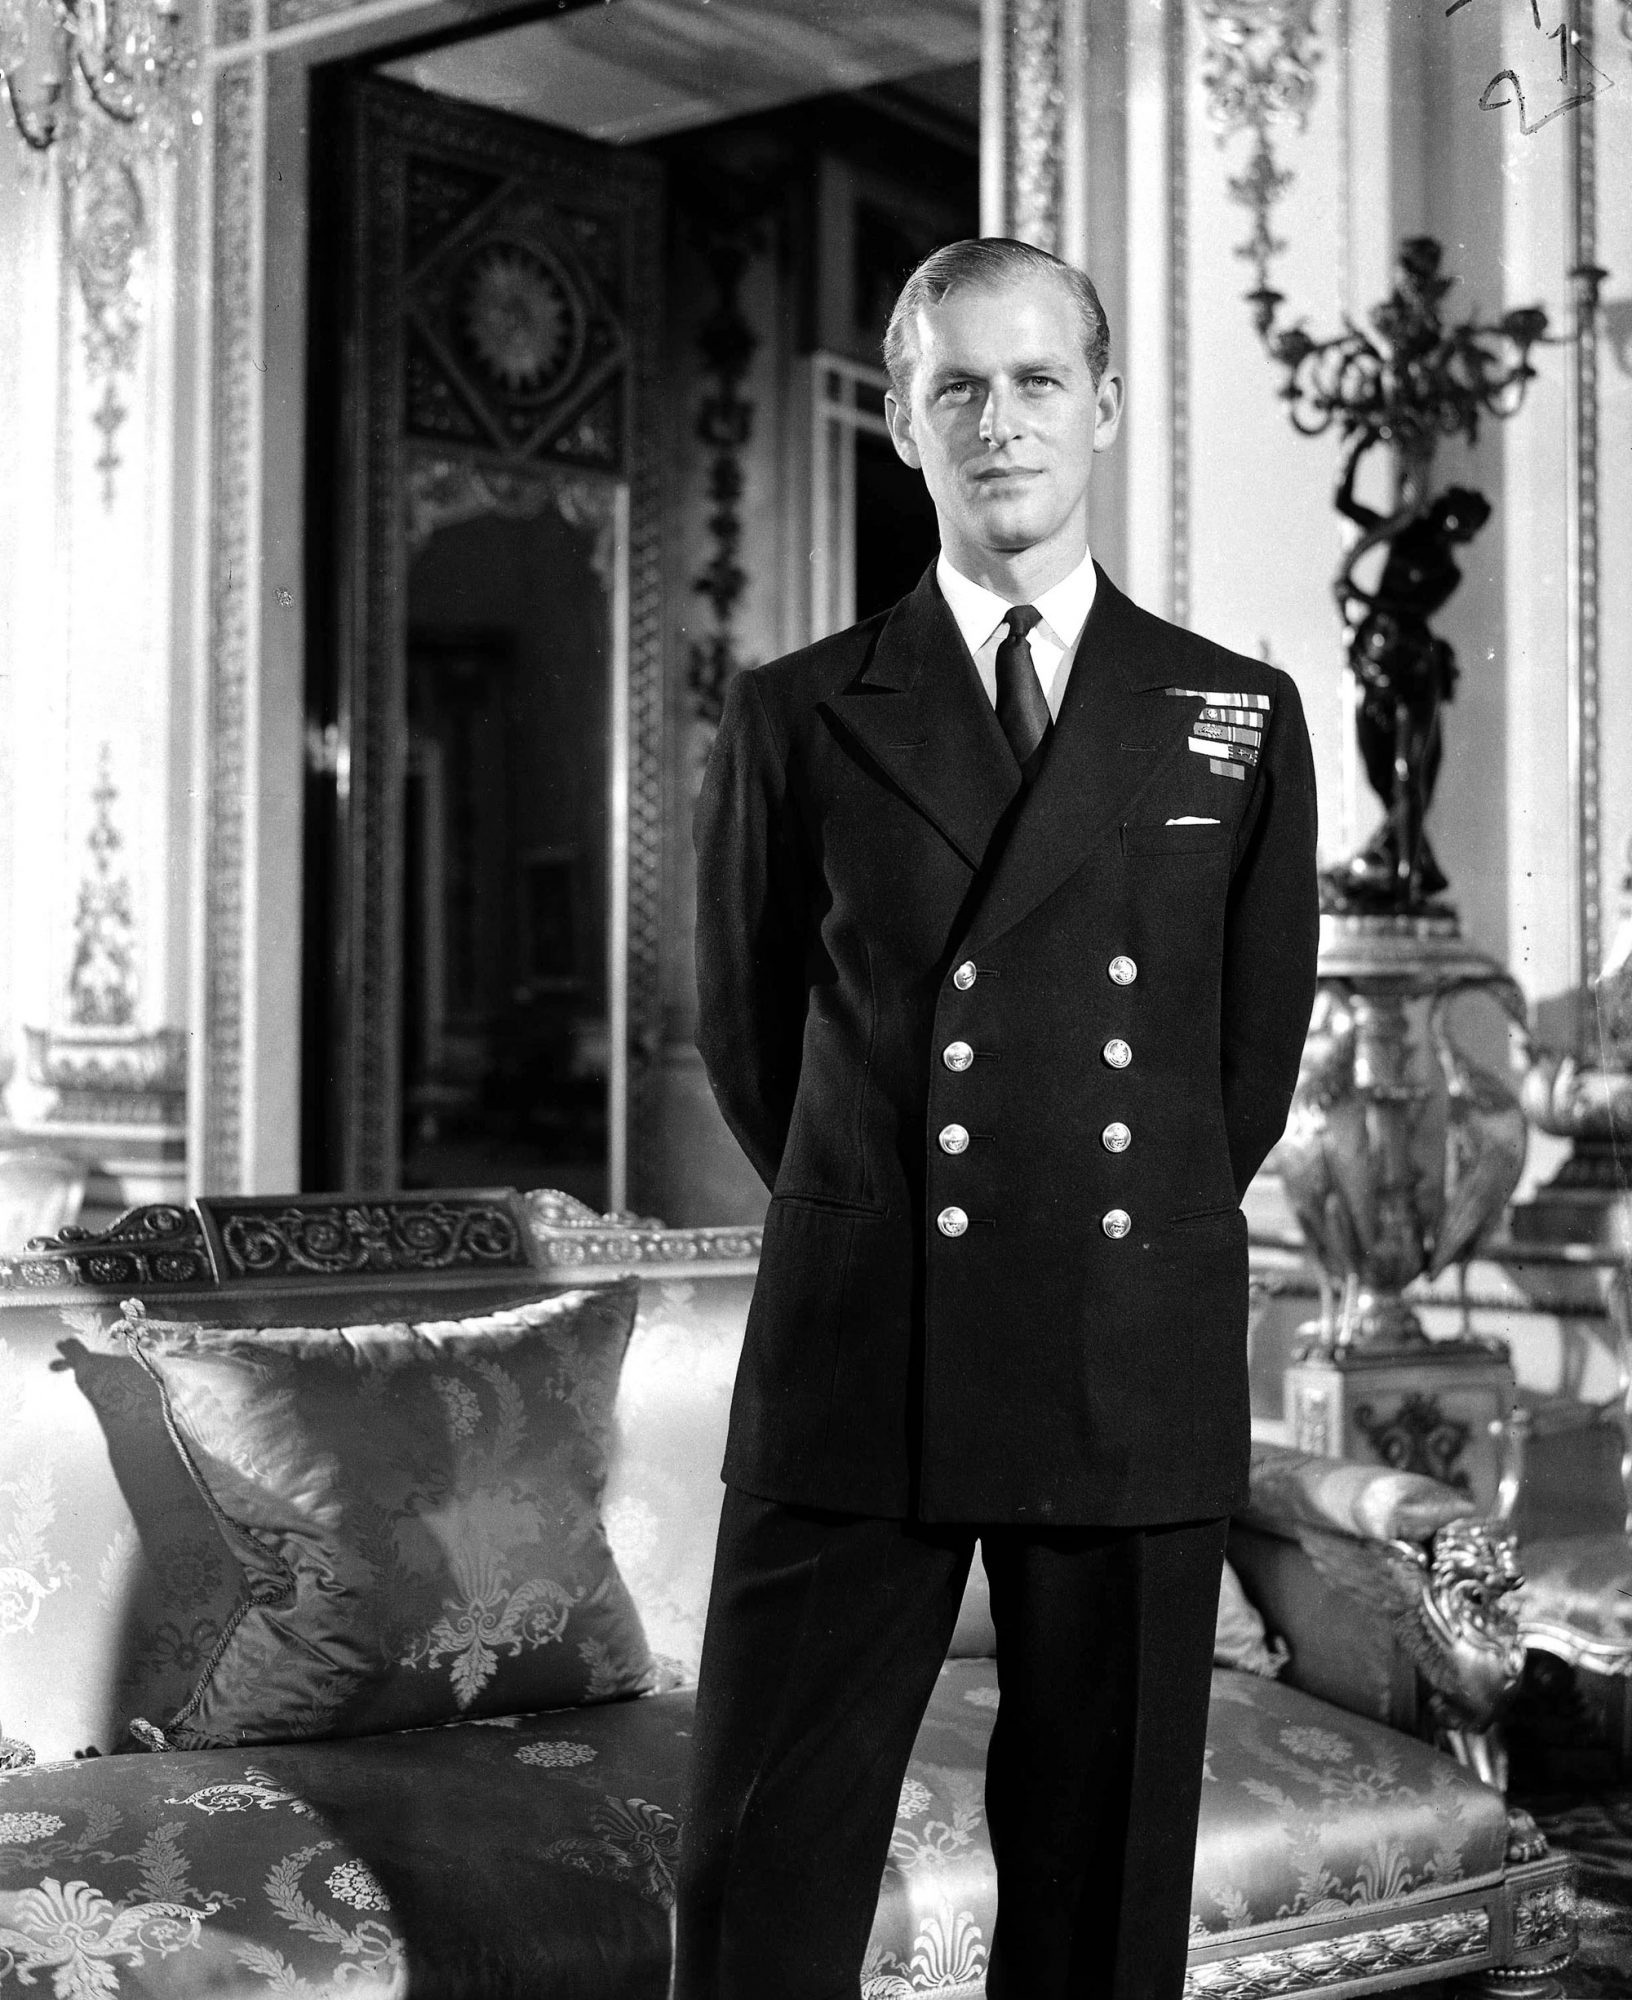 10th July 1947, Prince Philip pictured in Buckingham Palace after the offical announcement of his engagement to Princess Elizabeth